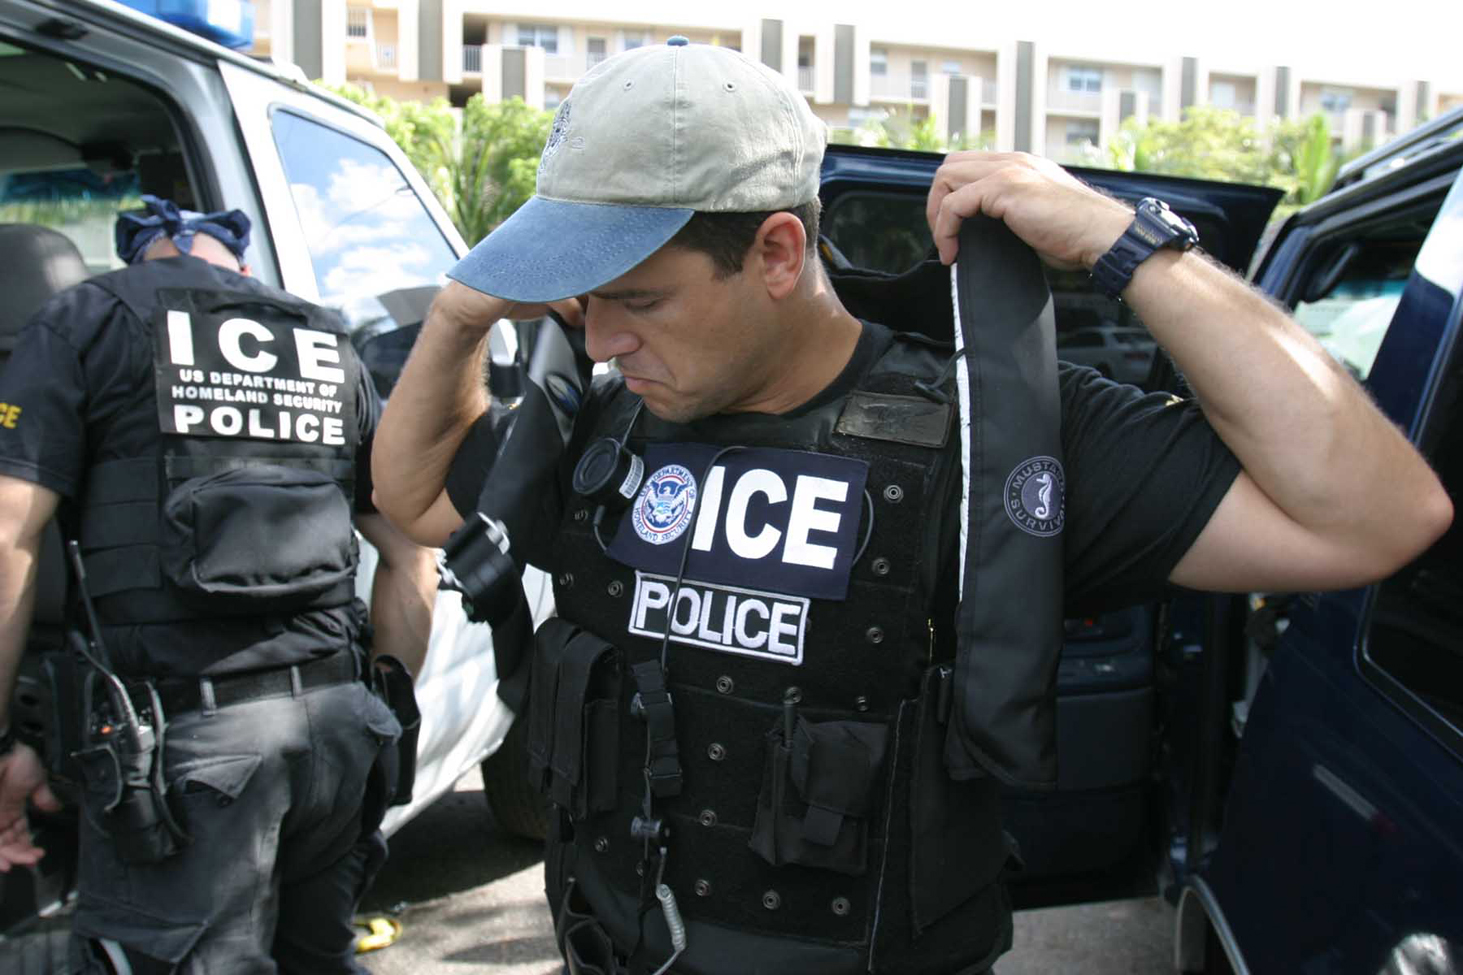 ICE police officers investigate people crossing the border.